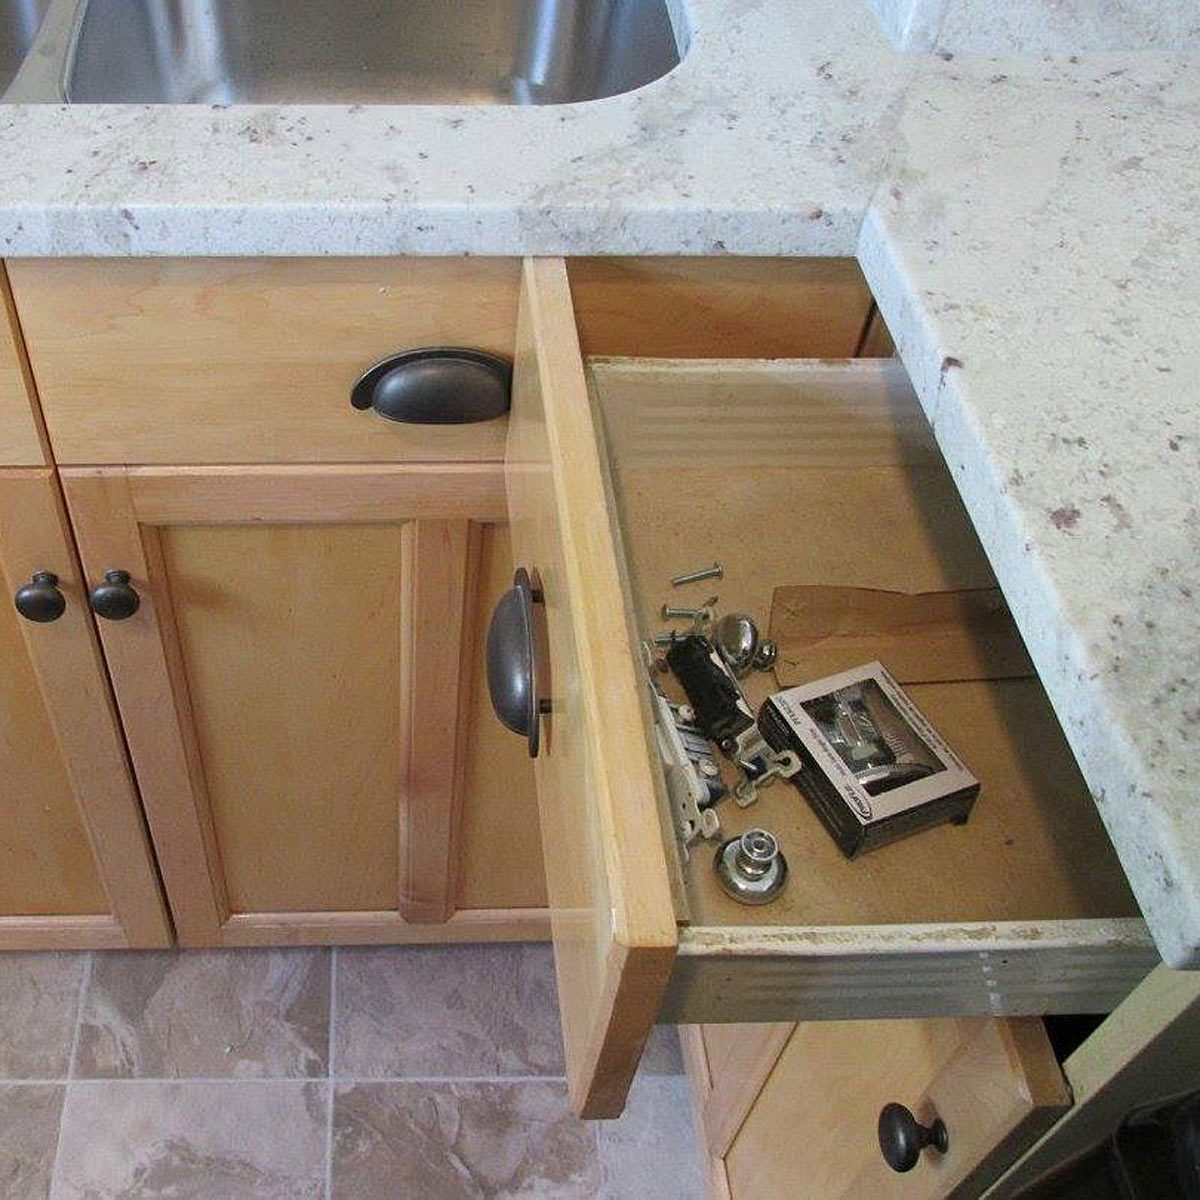 100 kitchen and bath updates that destroy a home's value